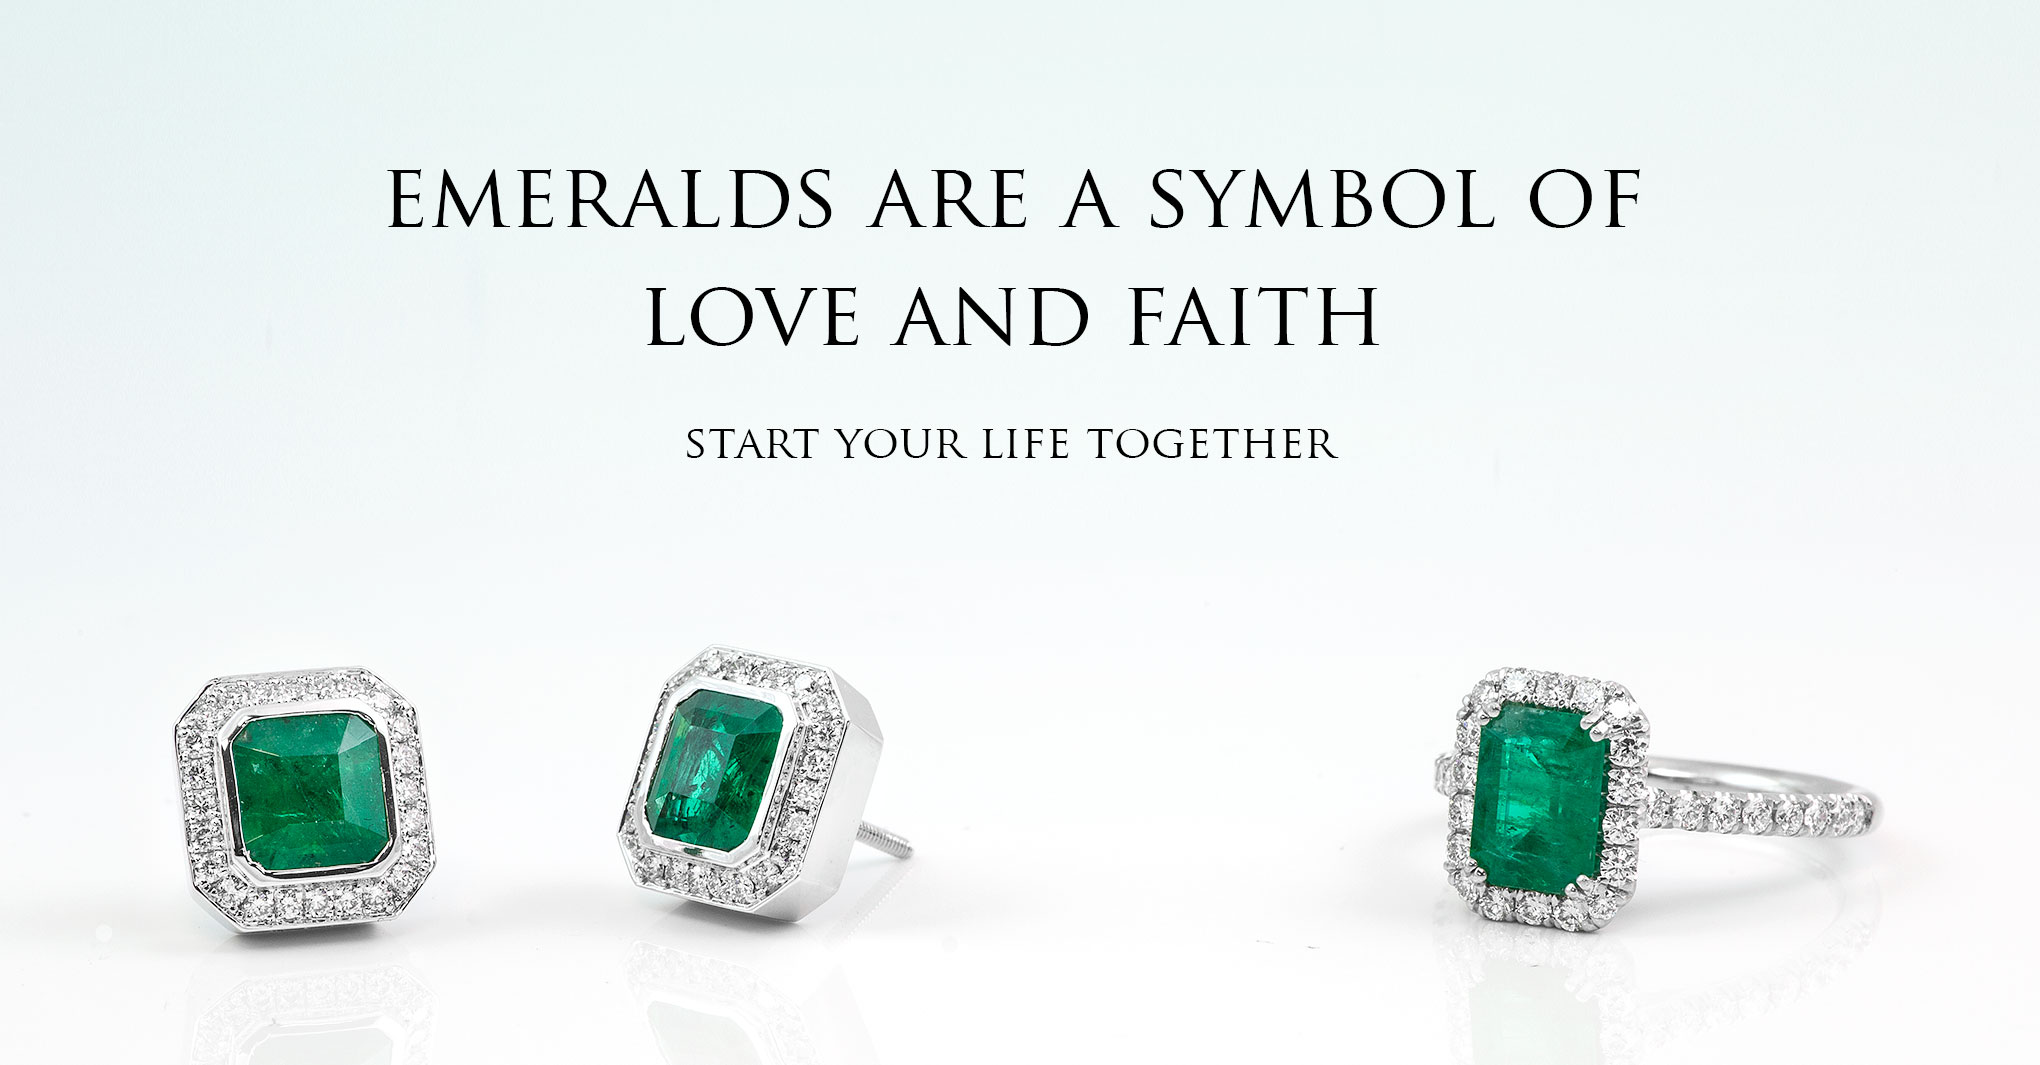 Emerald Engagement Rings and Earrings - 3804 Sepulved Blvd, Torrance Ca 90505